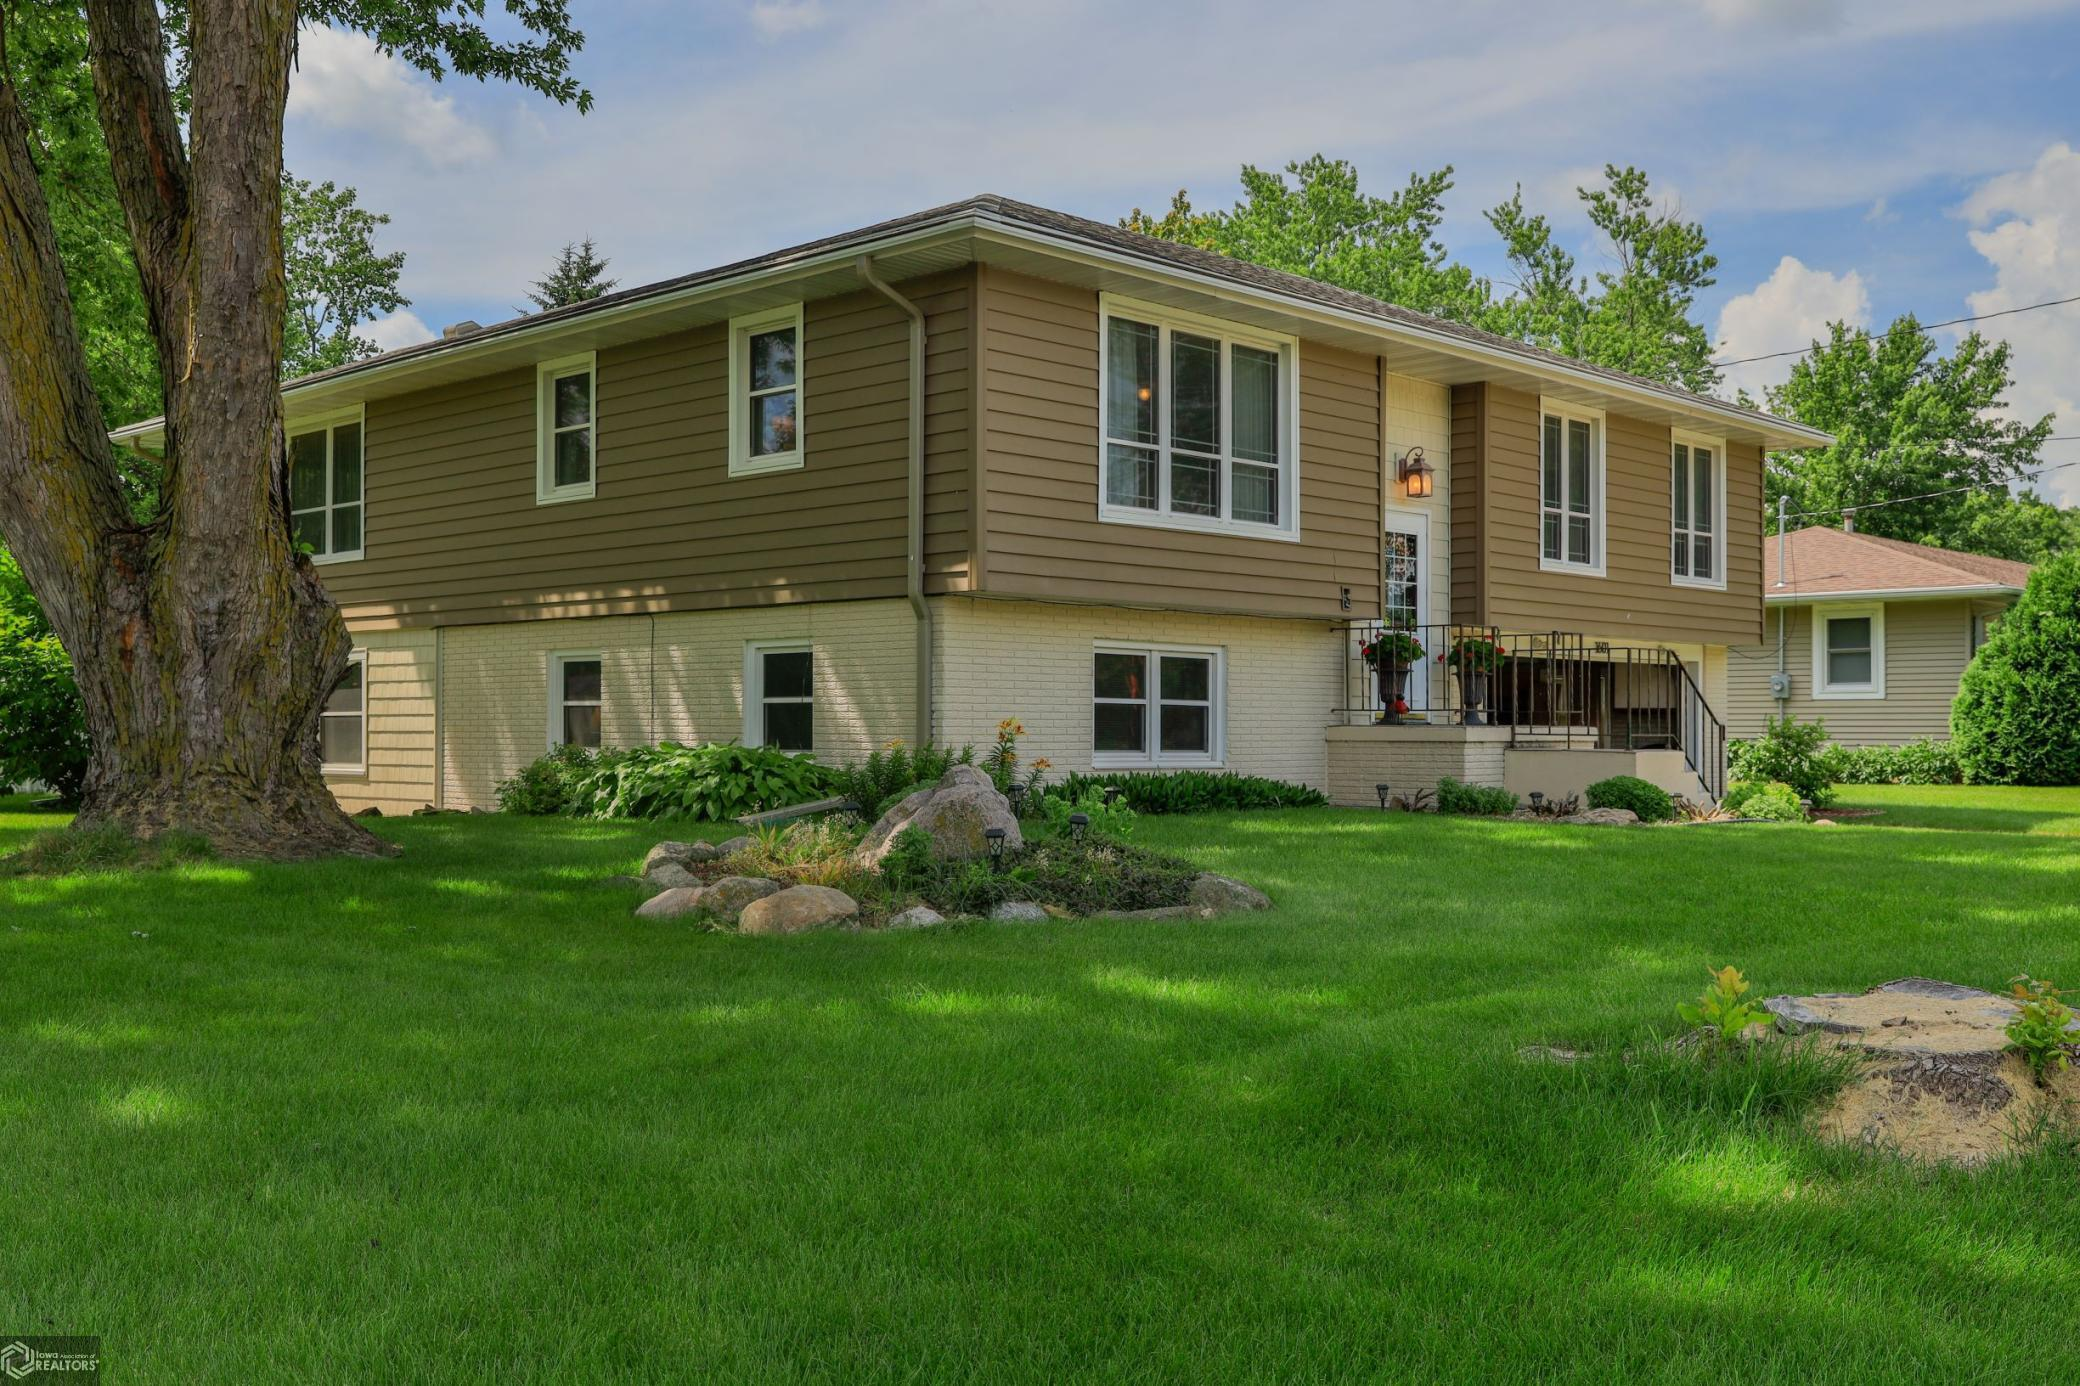 1601 Hobart Property Photo - Grinnell, IA real estate listing